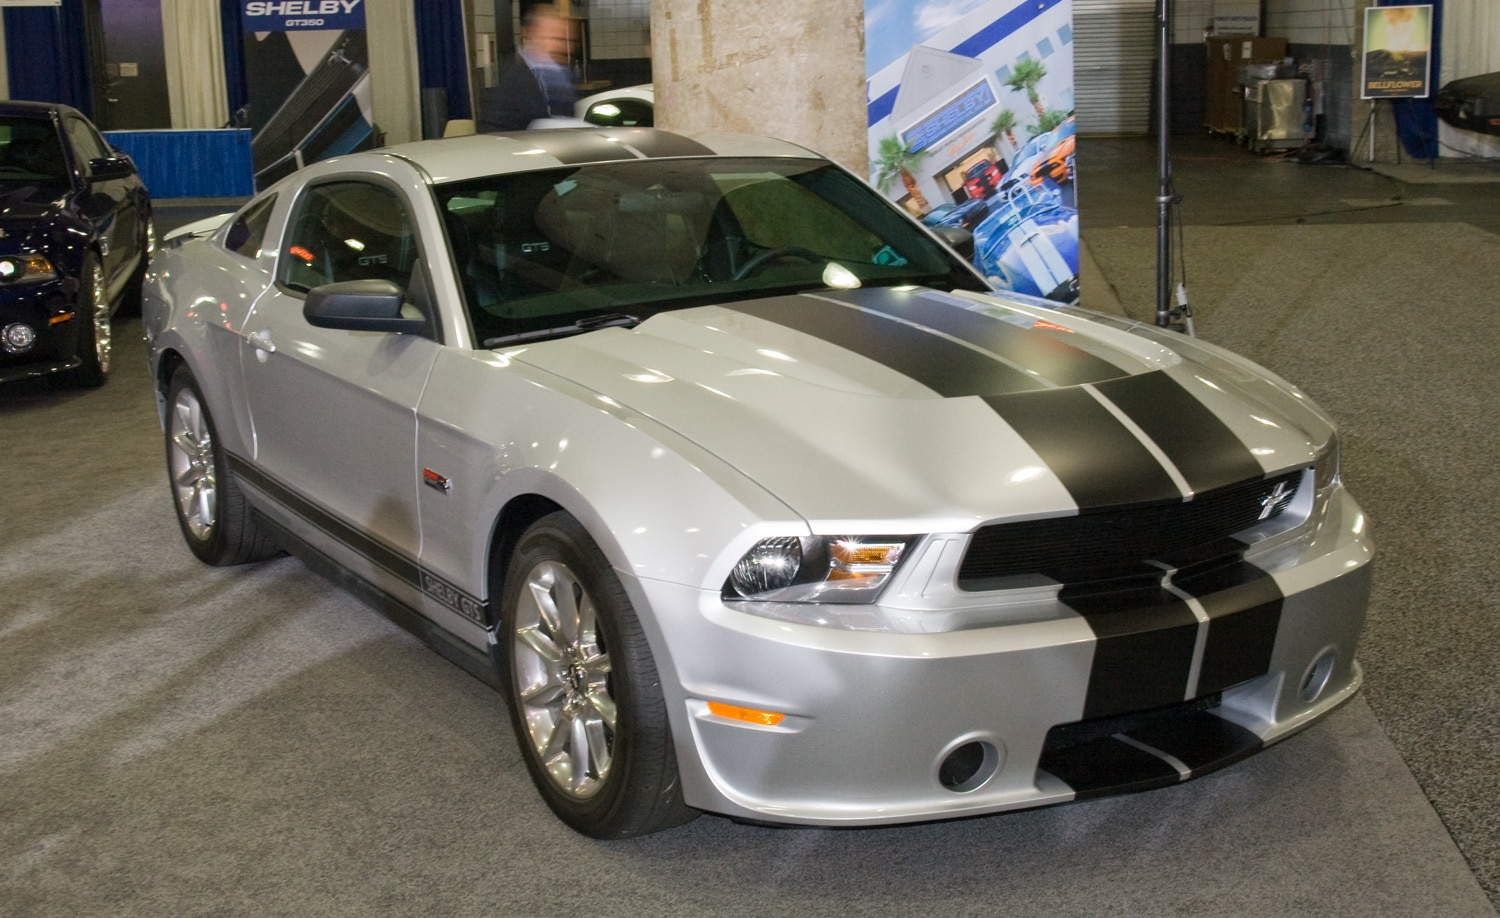 2012 Shelby Gts Mustang Front View1